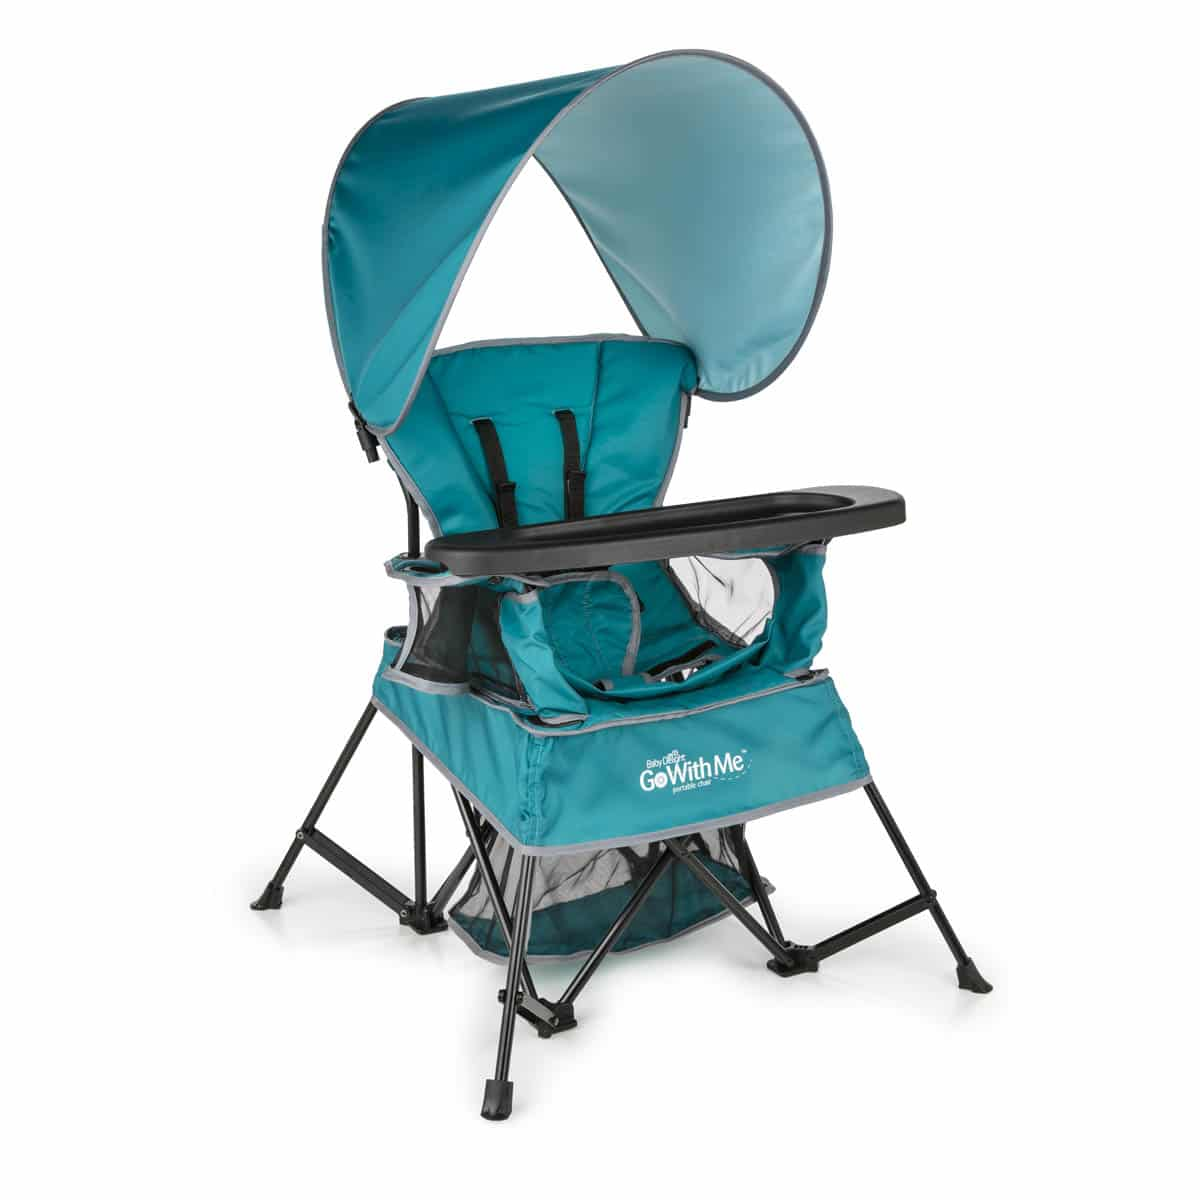 Teal Chair Go With Me Chair Teal Macari Baby Inc Baby Delight